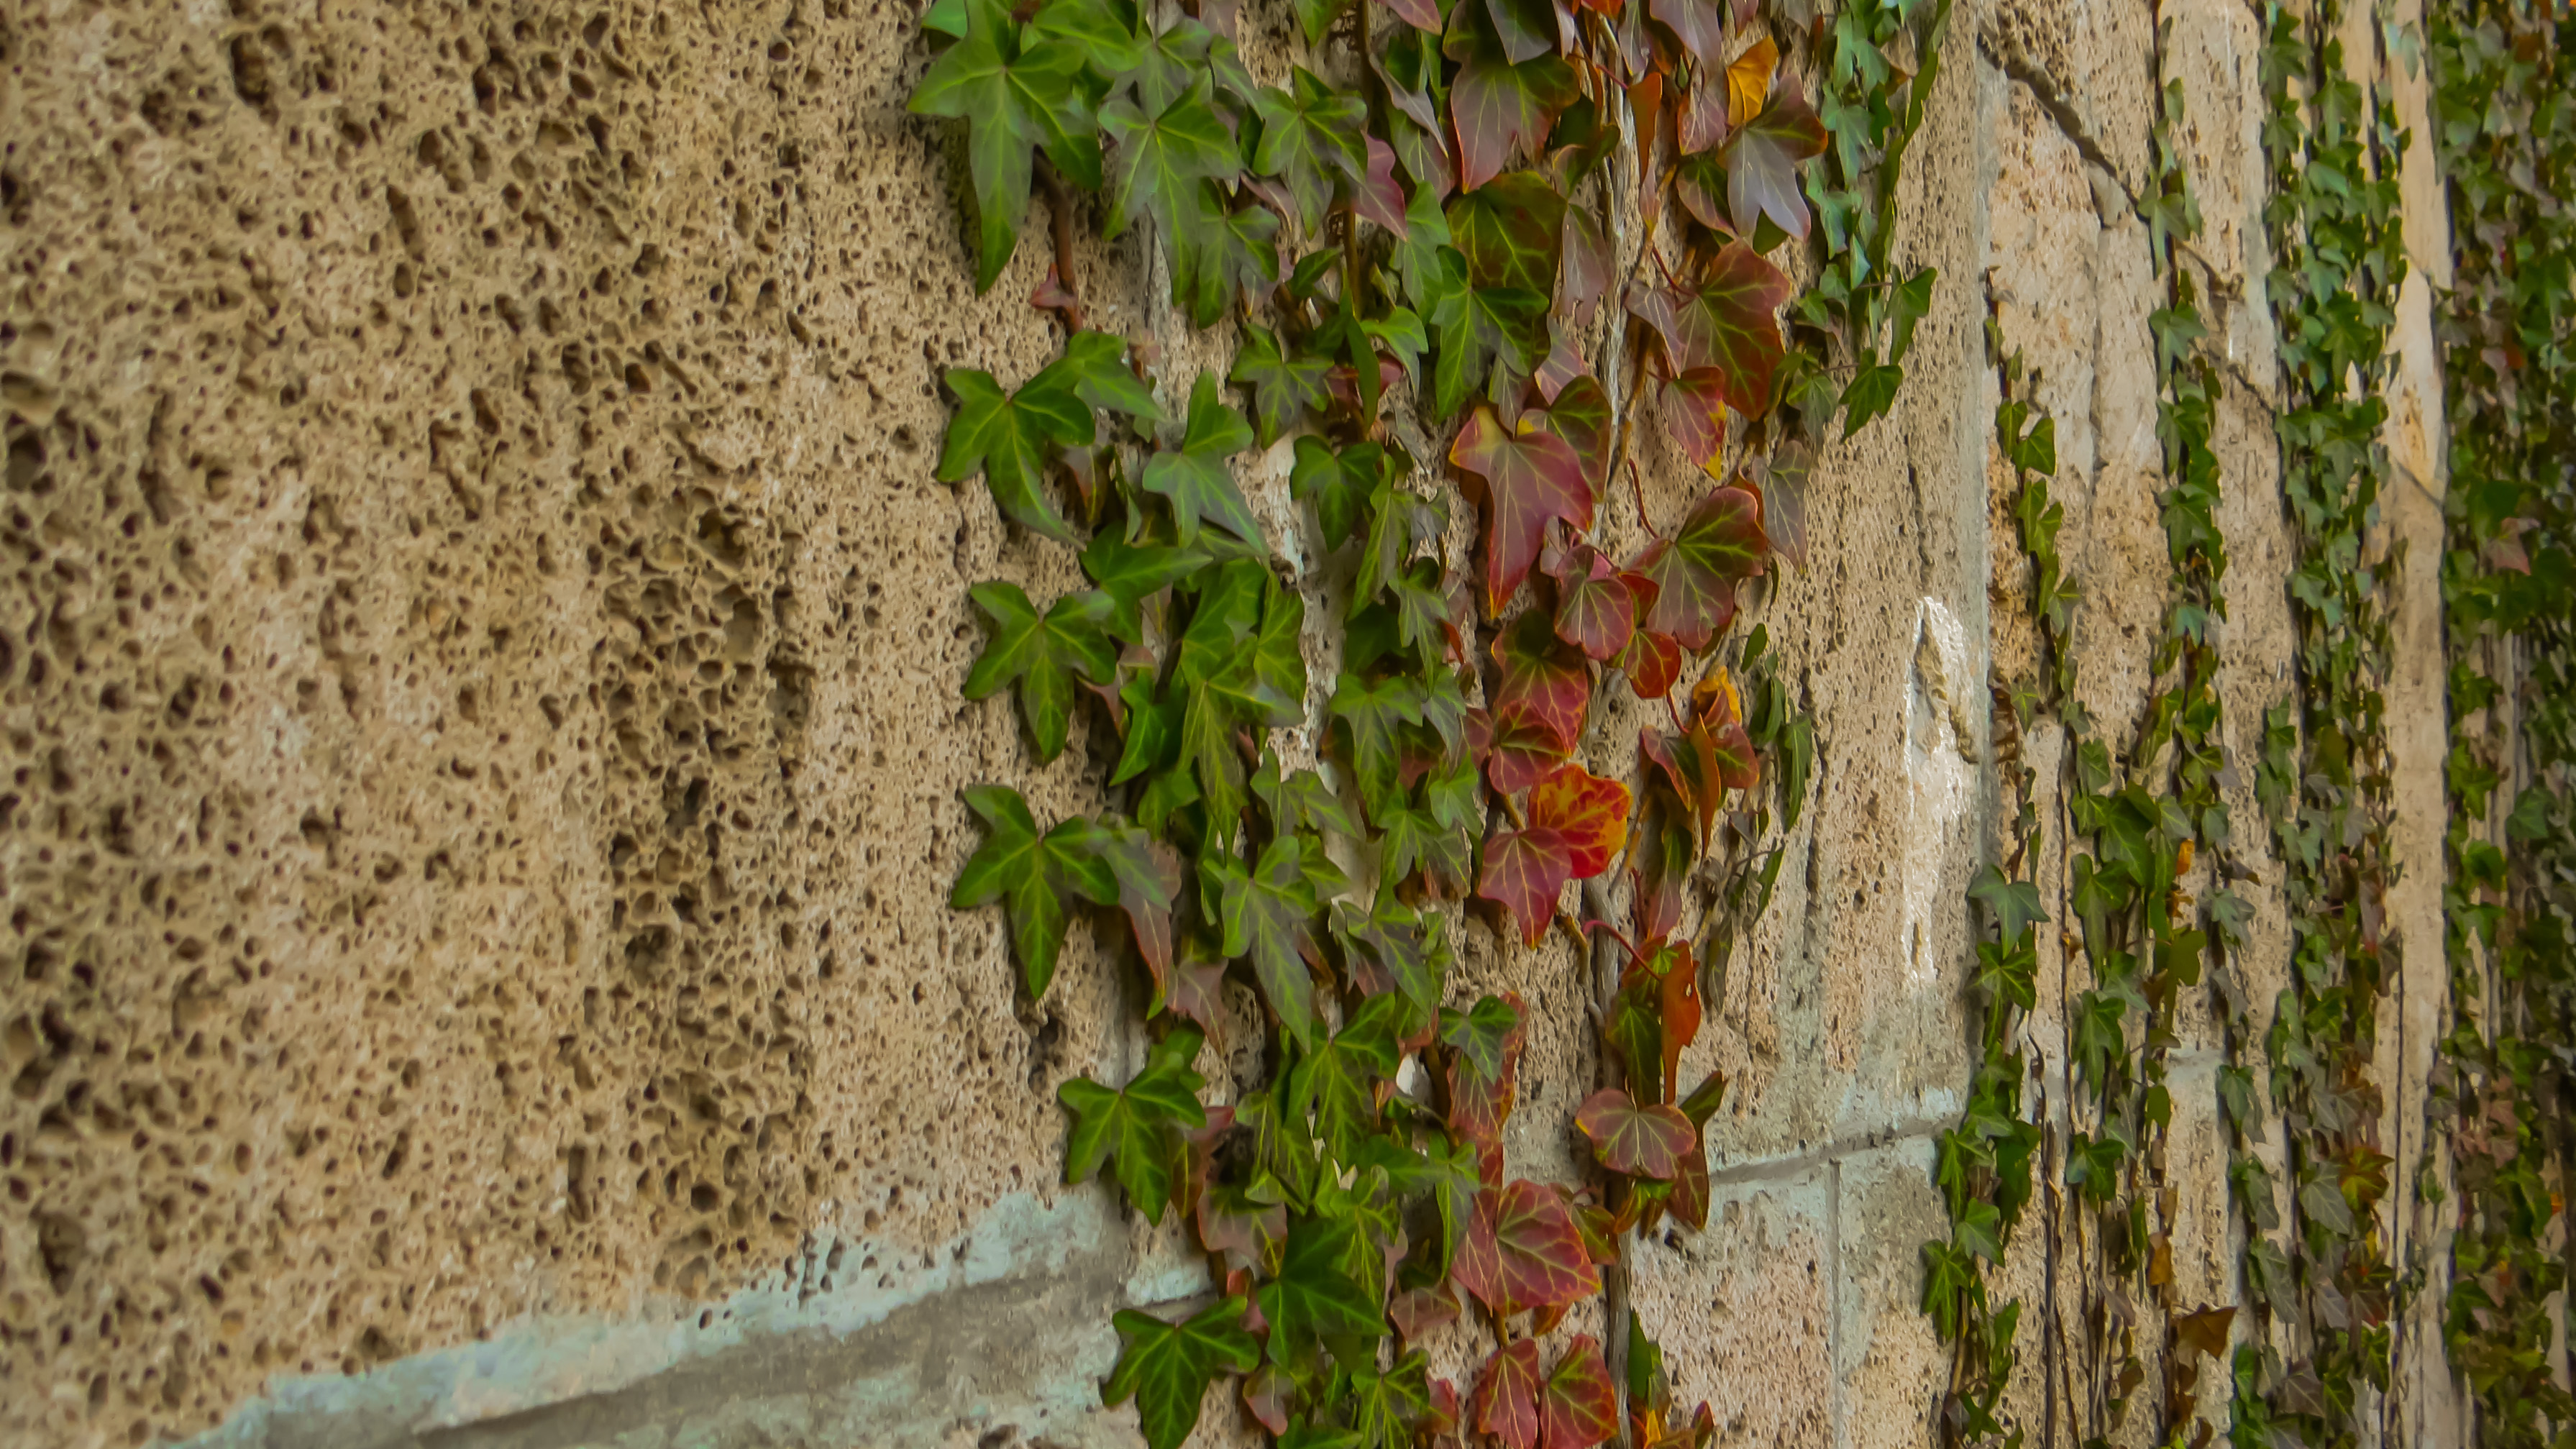 Wall plant, Natural, Leaves, Nature, Plant, HQ Photo